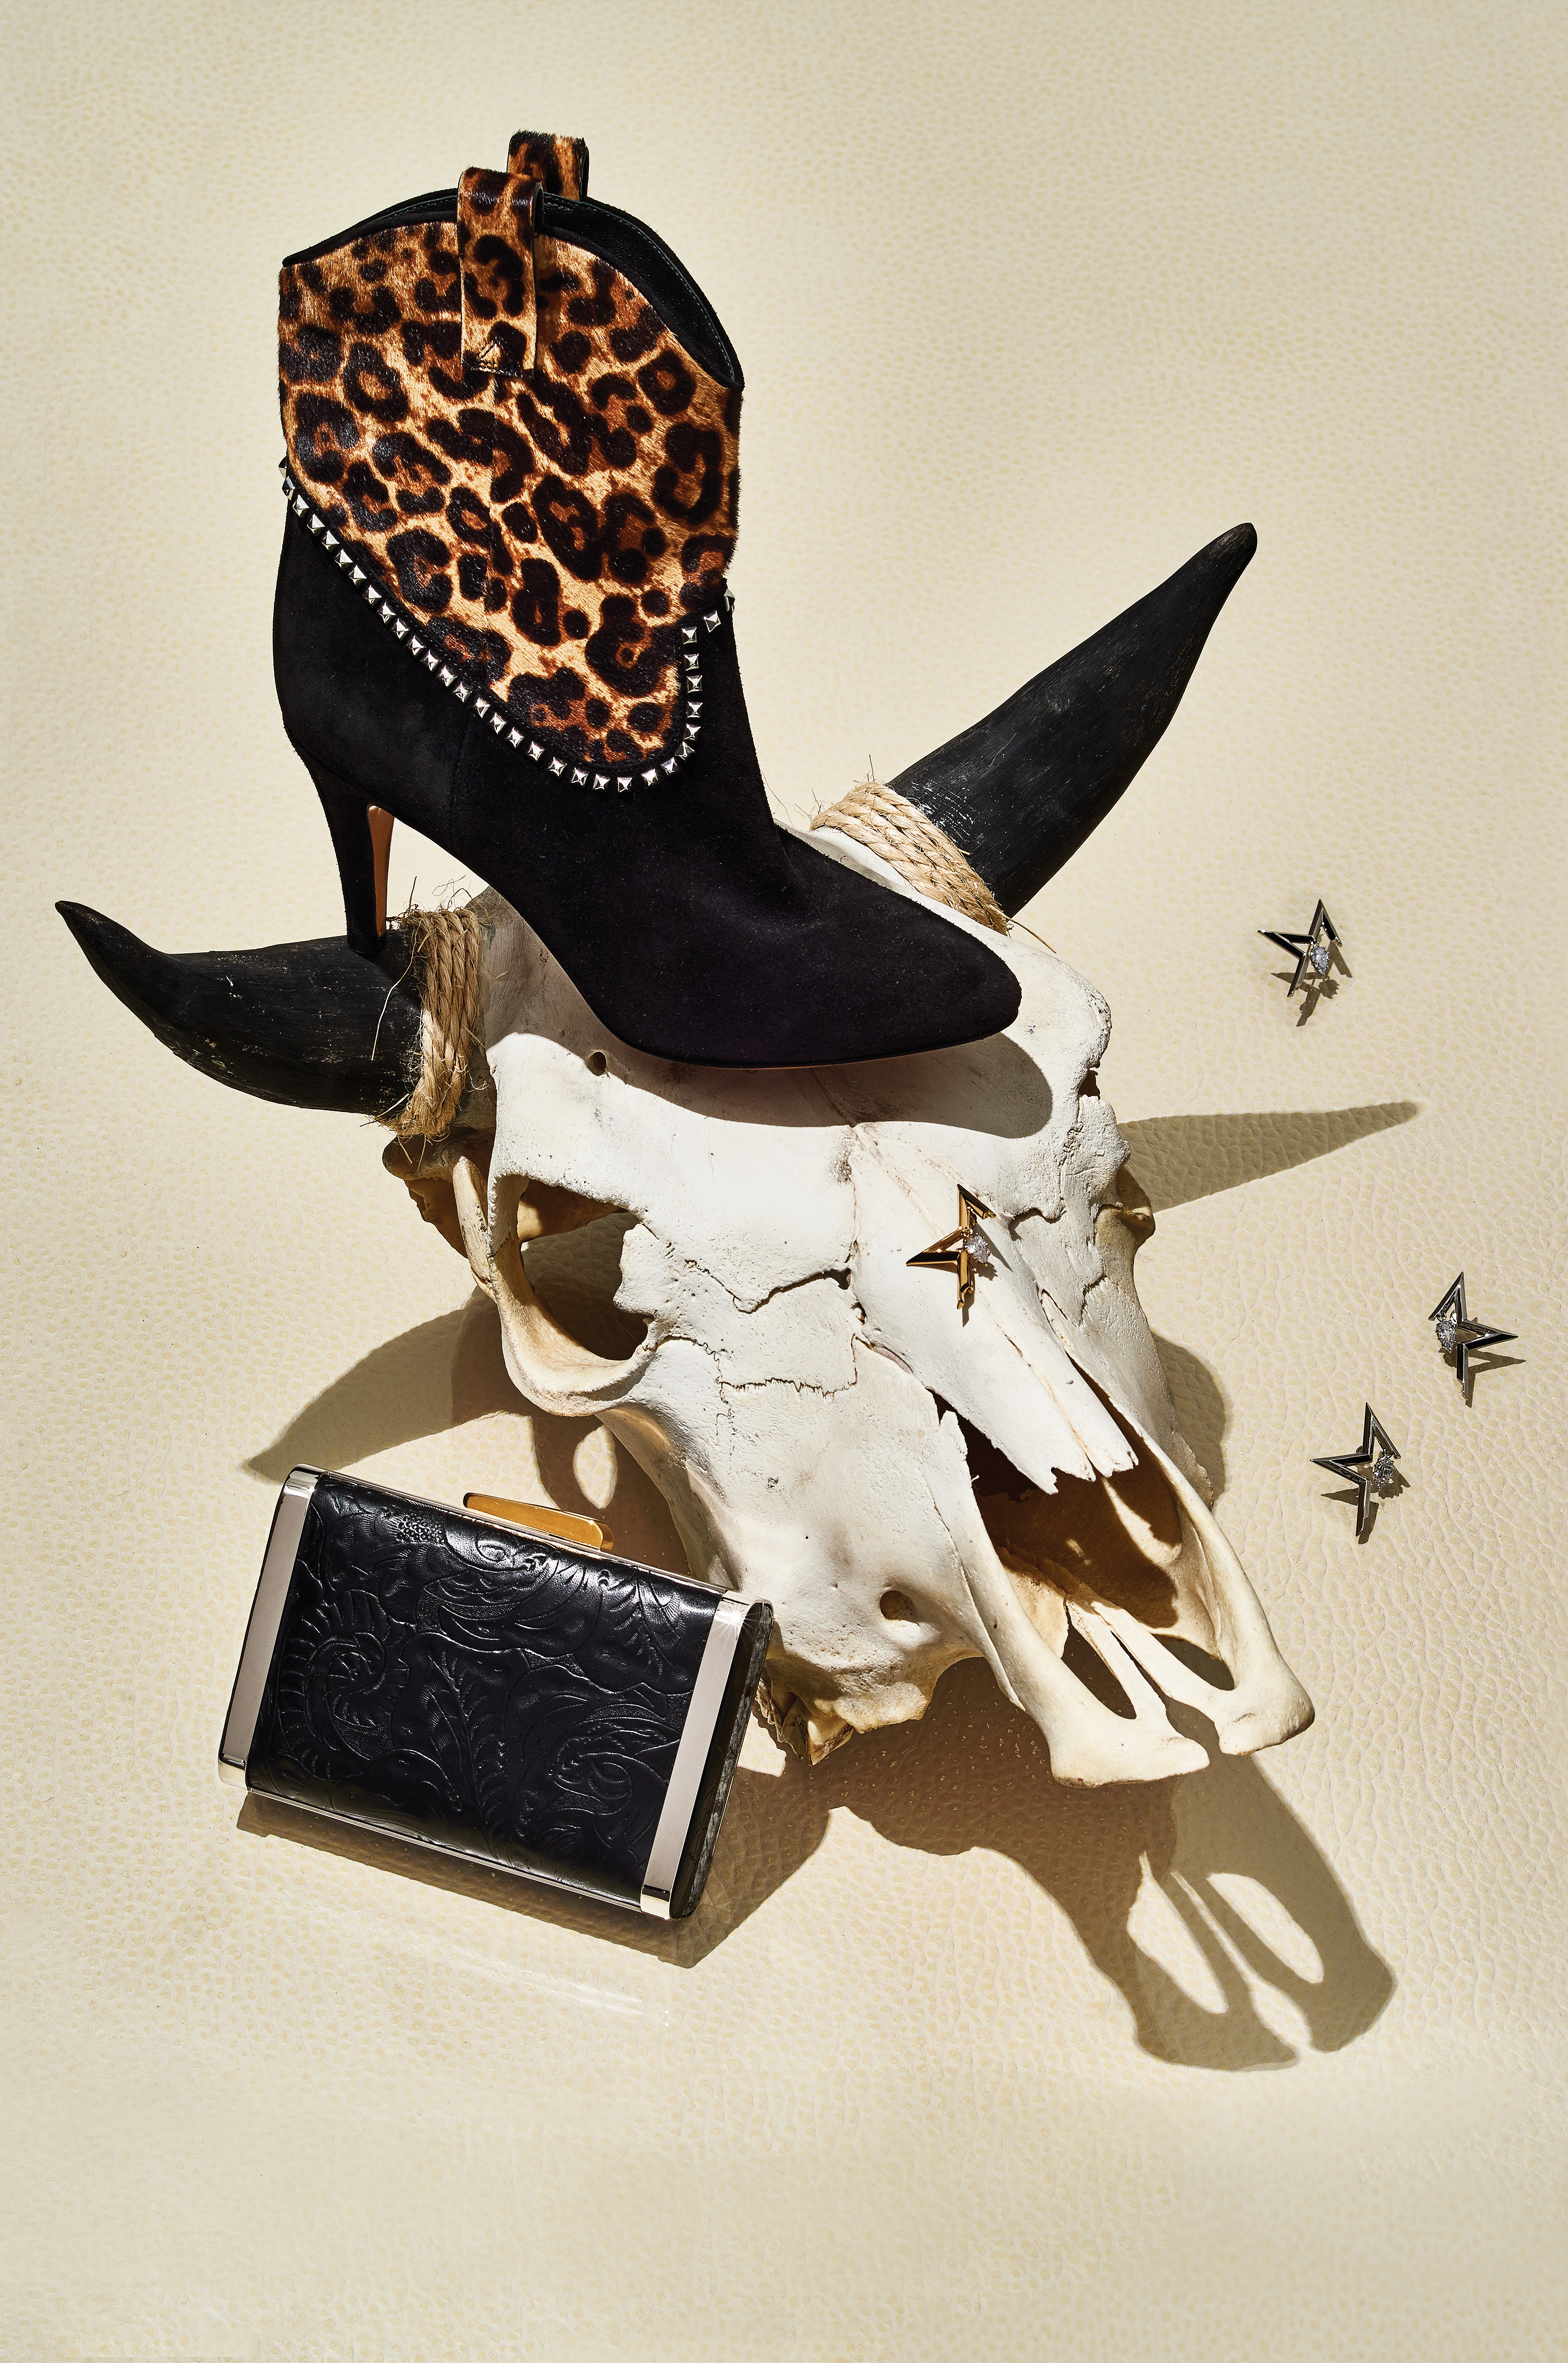 Marc Jacobs' calf hair and leather boot; Eddie Borgo's plated silver and gold earrings and brooch with hand-cut crystals; Hayward's leather and gray skakeskin clutch.